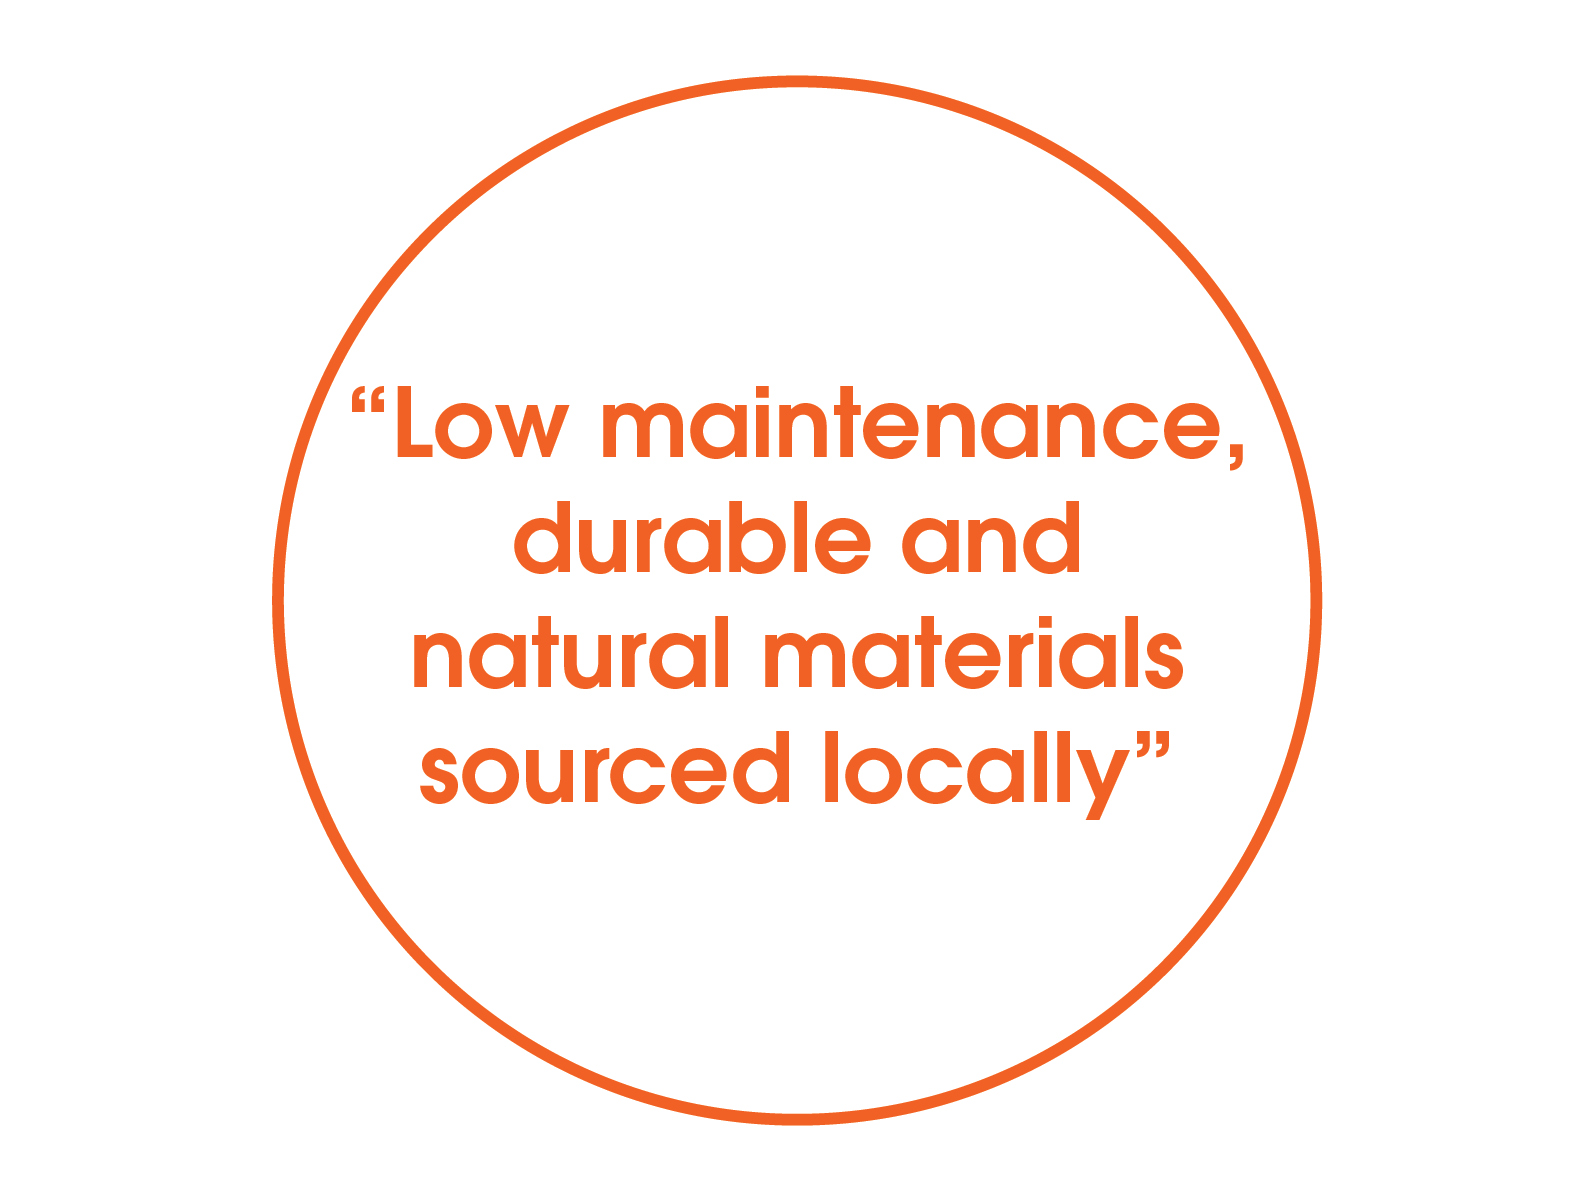 low maintenance durable and natural matierals sourced locally